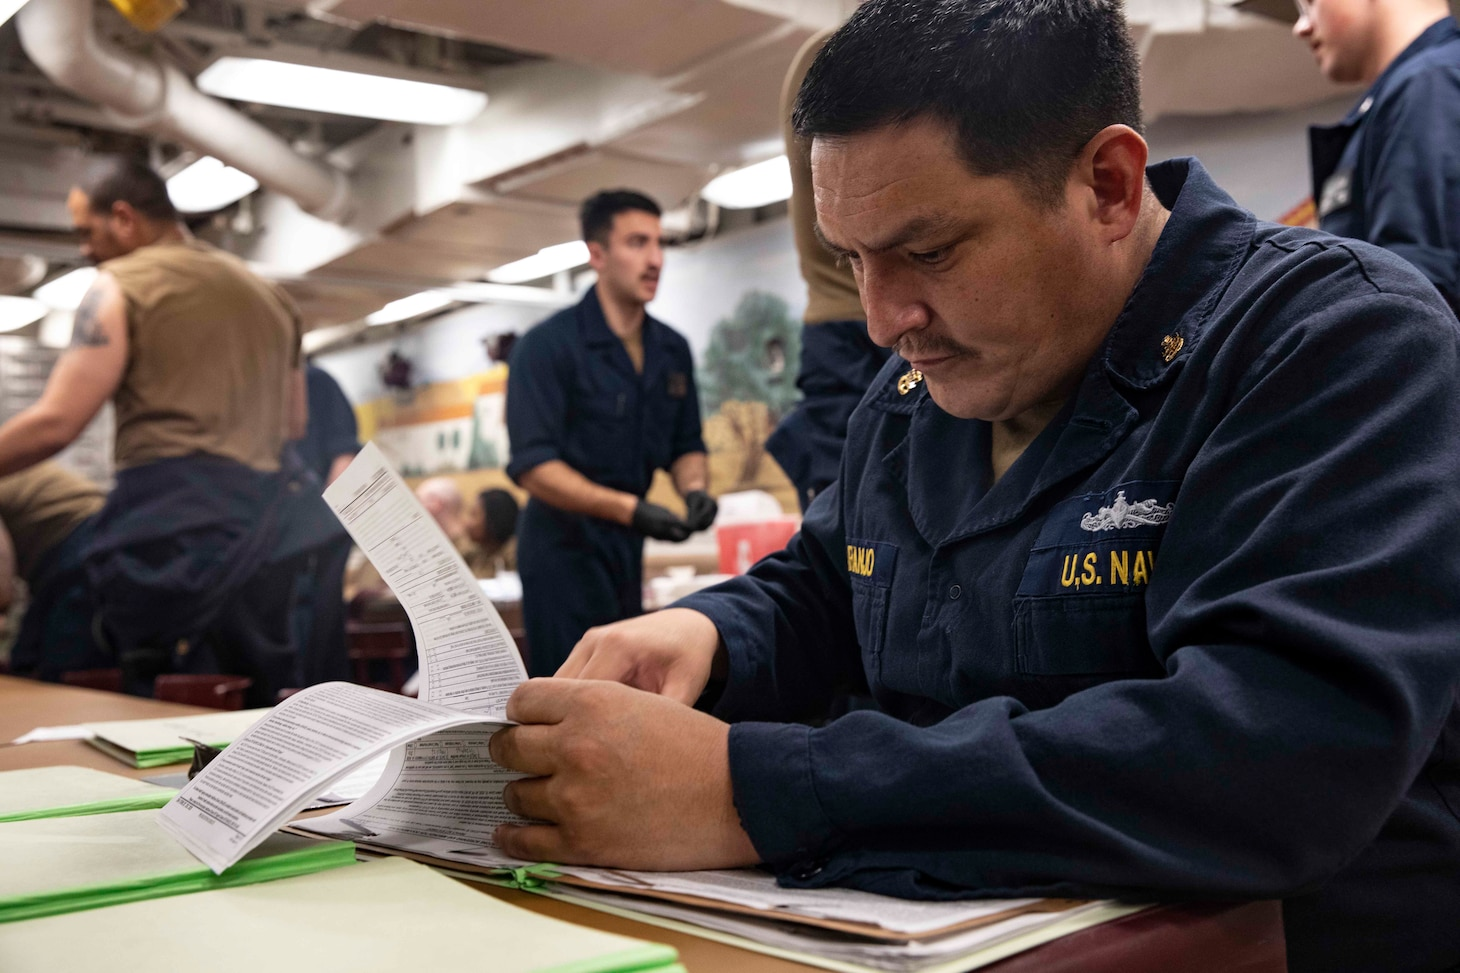 210220-N-BM428-0122 SOUDA BAY, Greece (Feb. 20, 2021) Senior Chief Hospital Corpsman Andre Naranjo verifies paperwork for Sailors aboard the Arleigh Burke-class guided-missile destroyer USS Porter (DDG 78) in roder for them to receive the COVID-19 vaccine in Souda Bay, Greece, Feb. 20, 2021. Porter, forward deployed to Rota, Spain, is on its ninth patrol in the U.S. Sixth Fleet area of operations in support of U.S. national interests and security in Europe and Africa. (U.S. Navy photo by Mass Communication Specialist 2nd Class Damon Grosvenor)